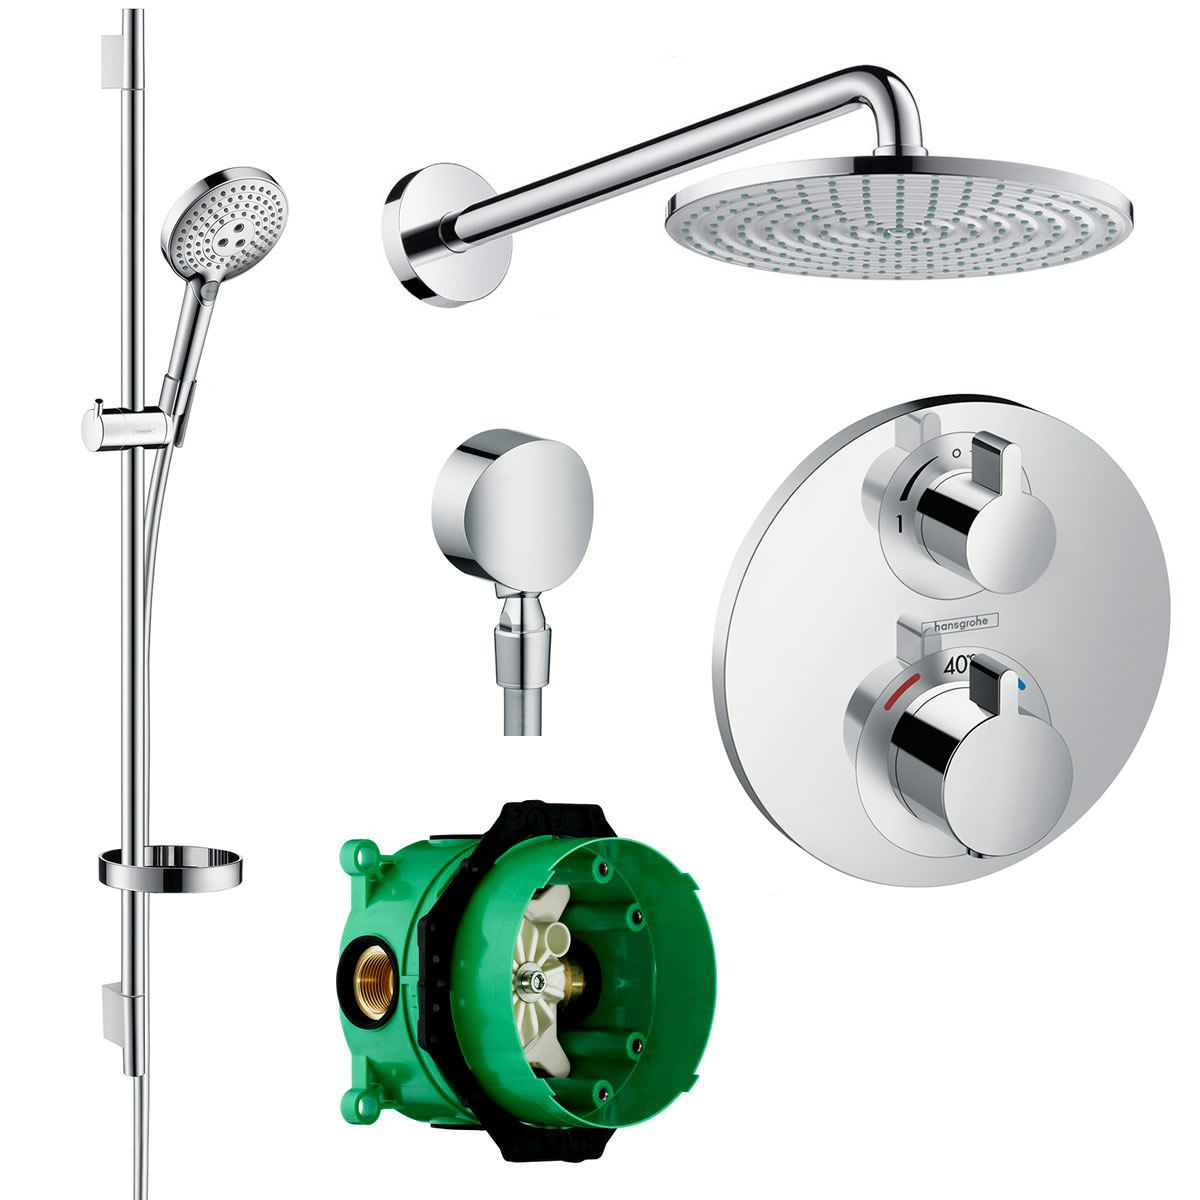 Hansgrohe Round Ecostat Valve With Raindance 240 Overhead Shower And Select 120 Rail Kit